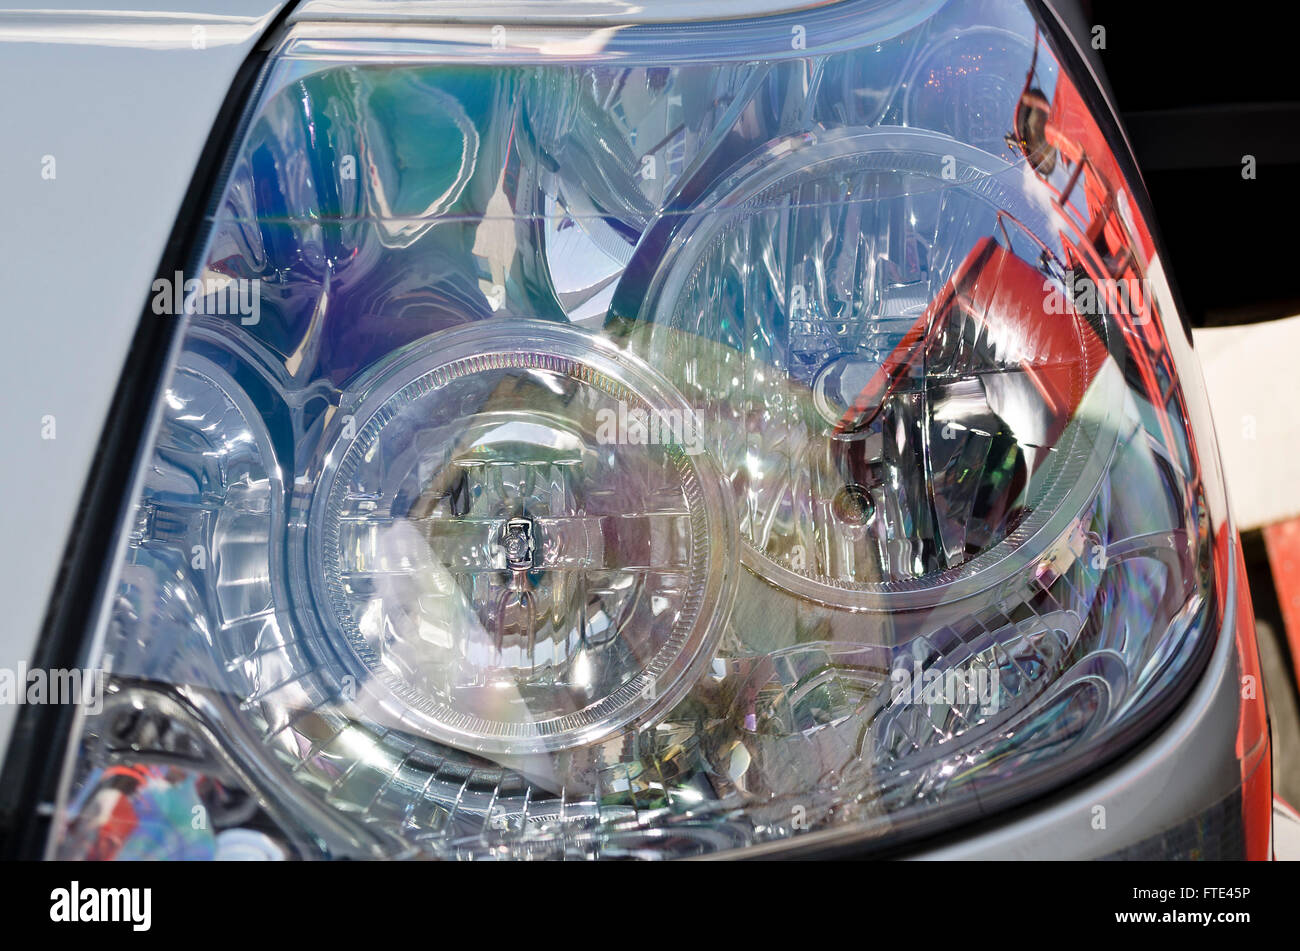 Headlight Reflector Stock Photos Headlight Reflector Stock Images